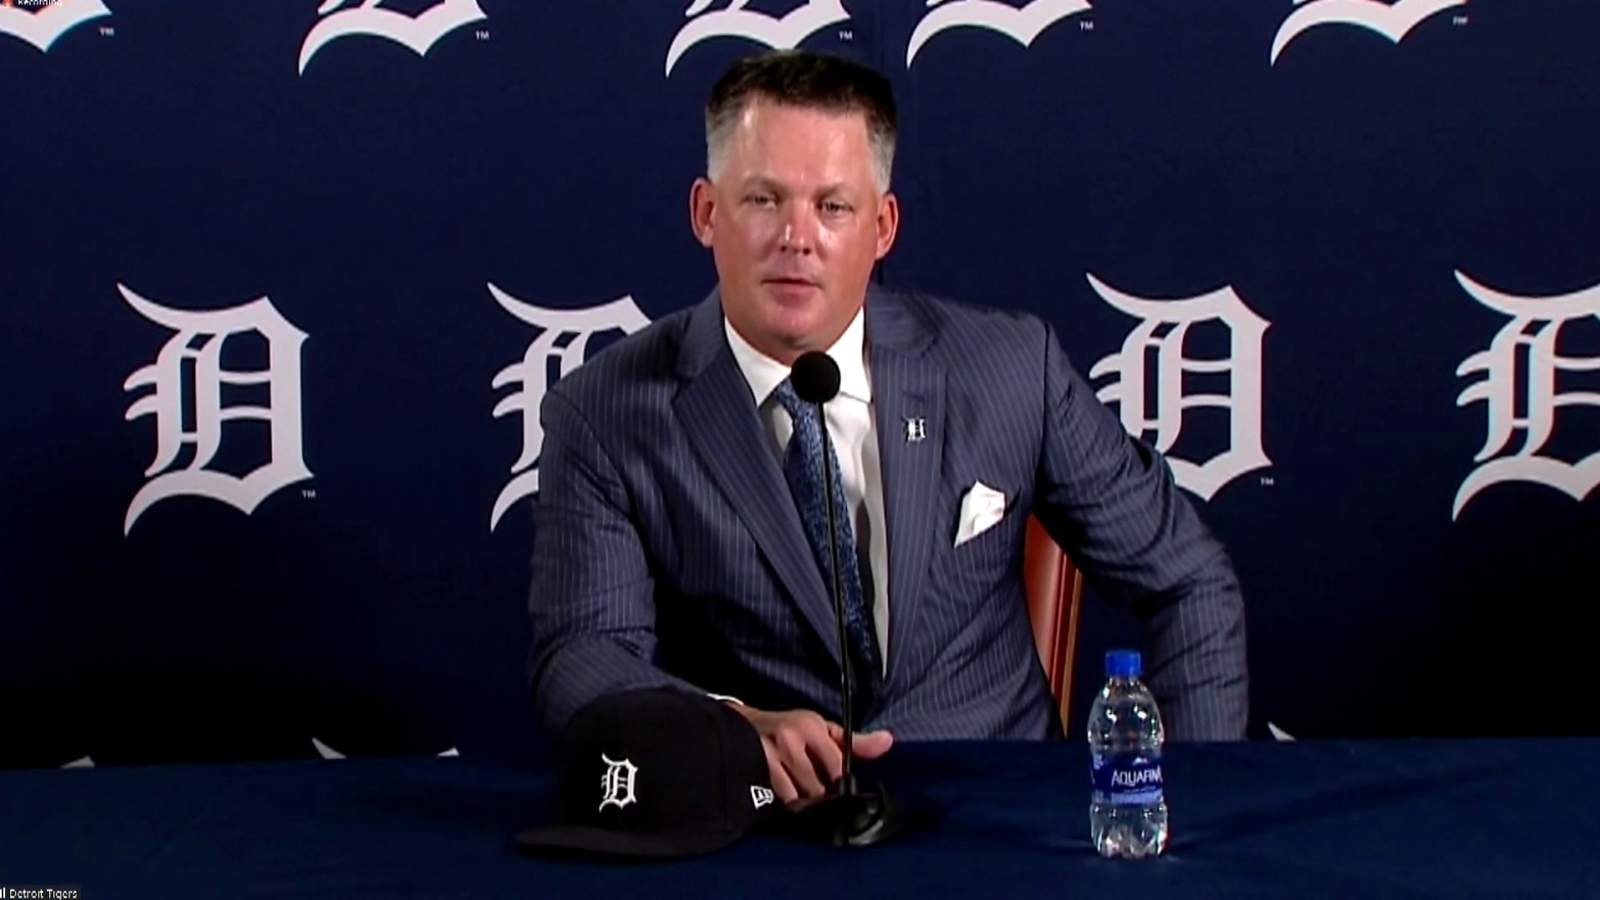 Detroit Tigers prioritize winning with AJ Hinch, who's been in almost this exact same spot before